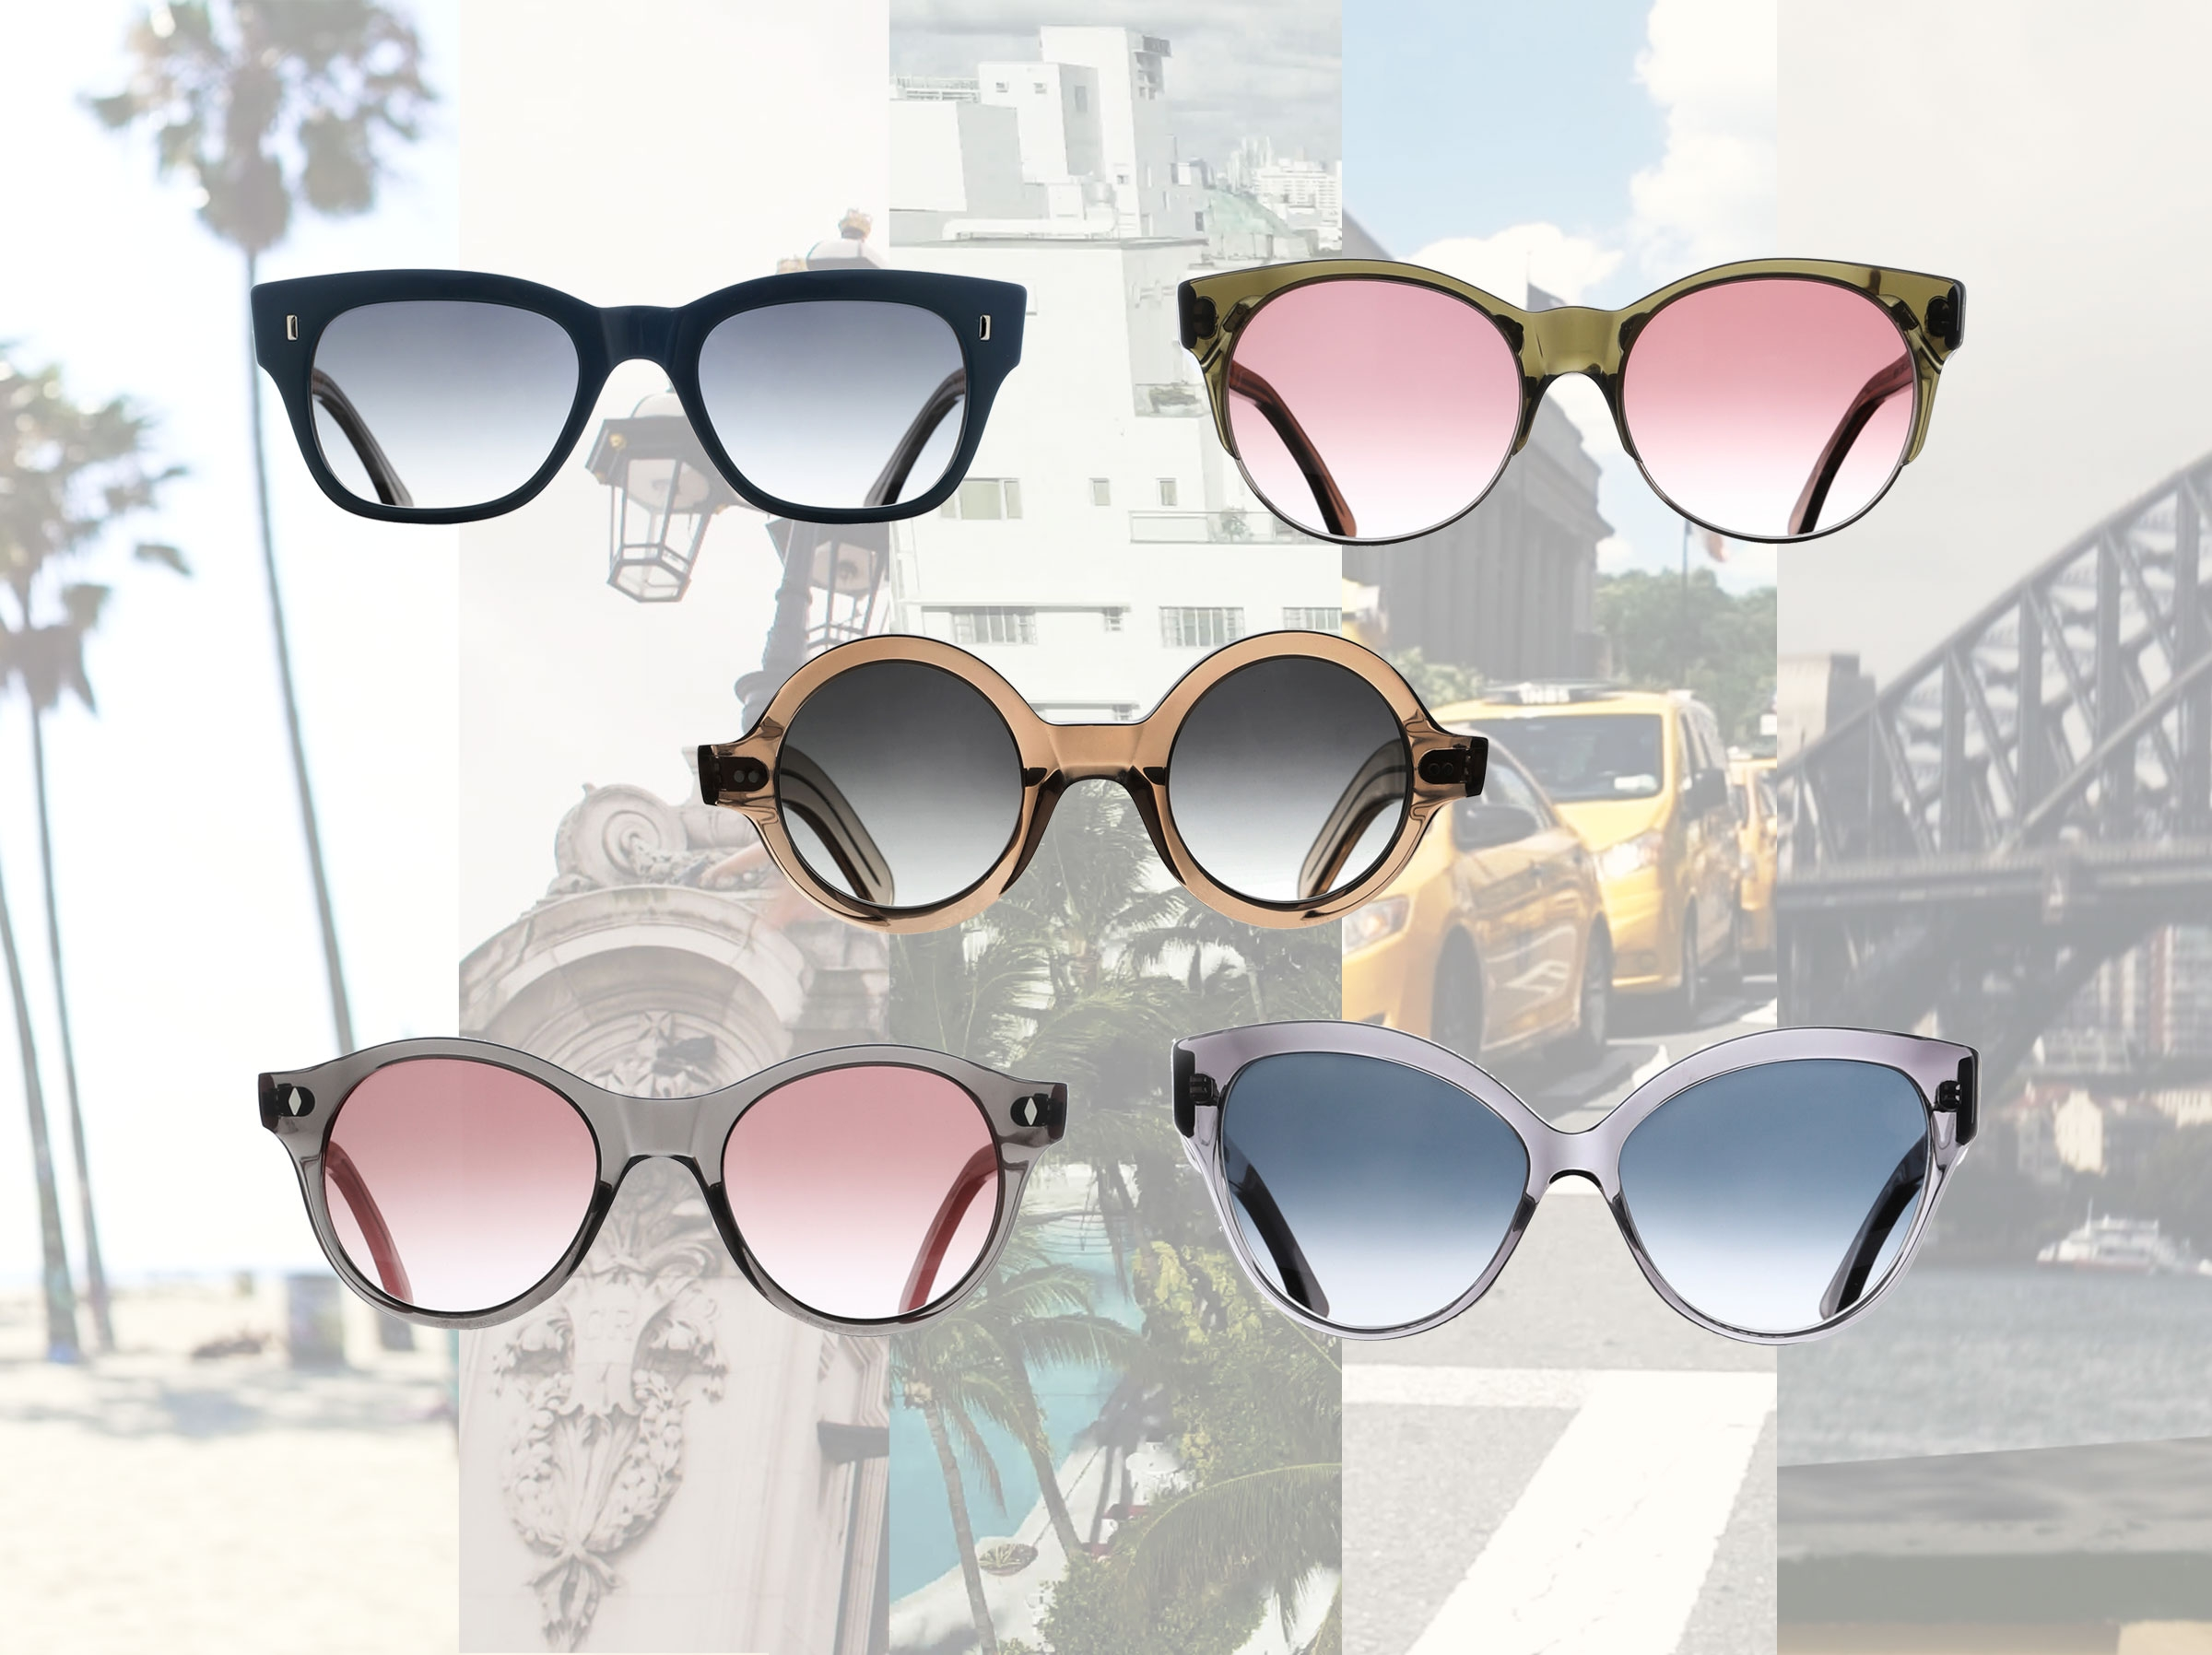 Five styles of Zimmermann x Cutler and Gross sunglasses